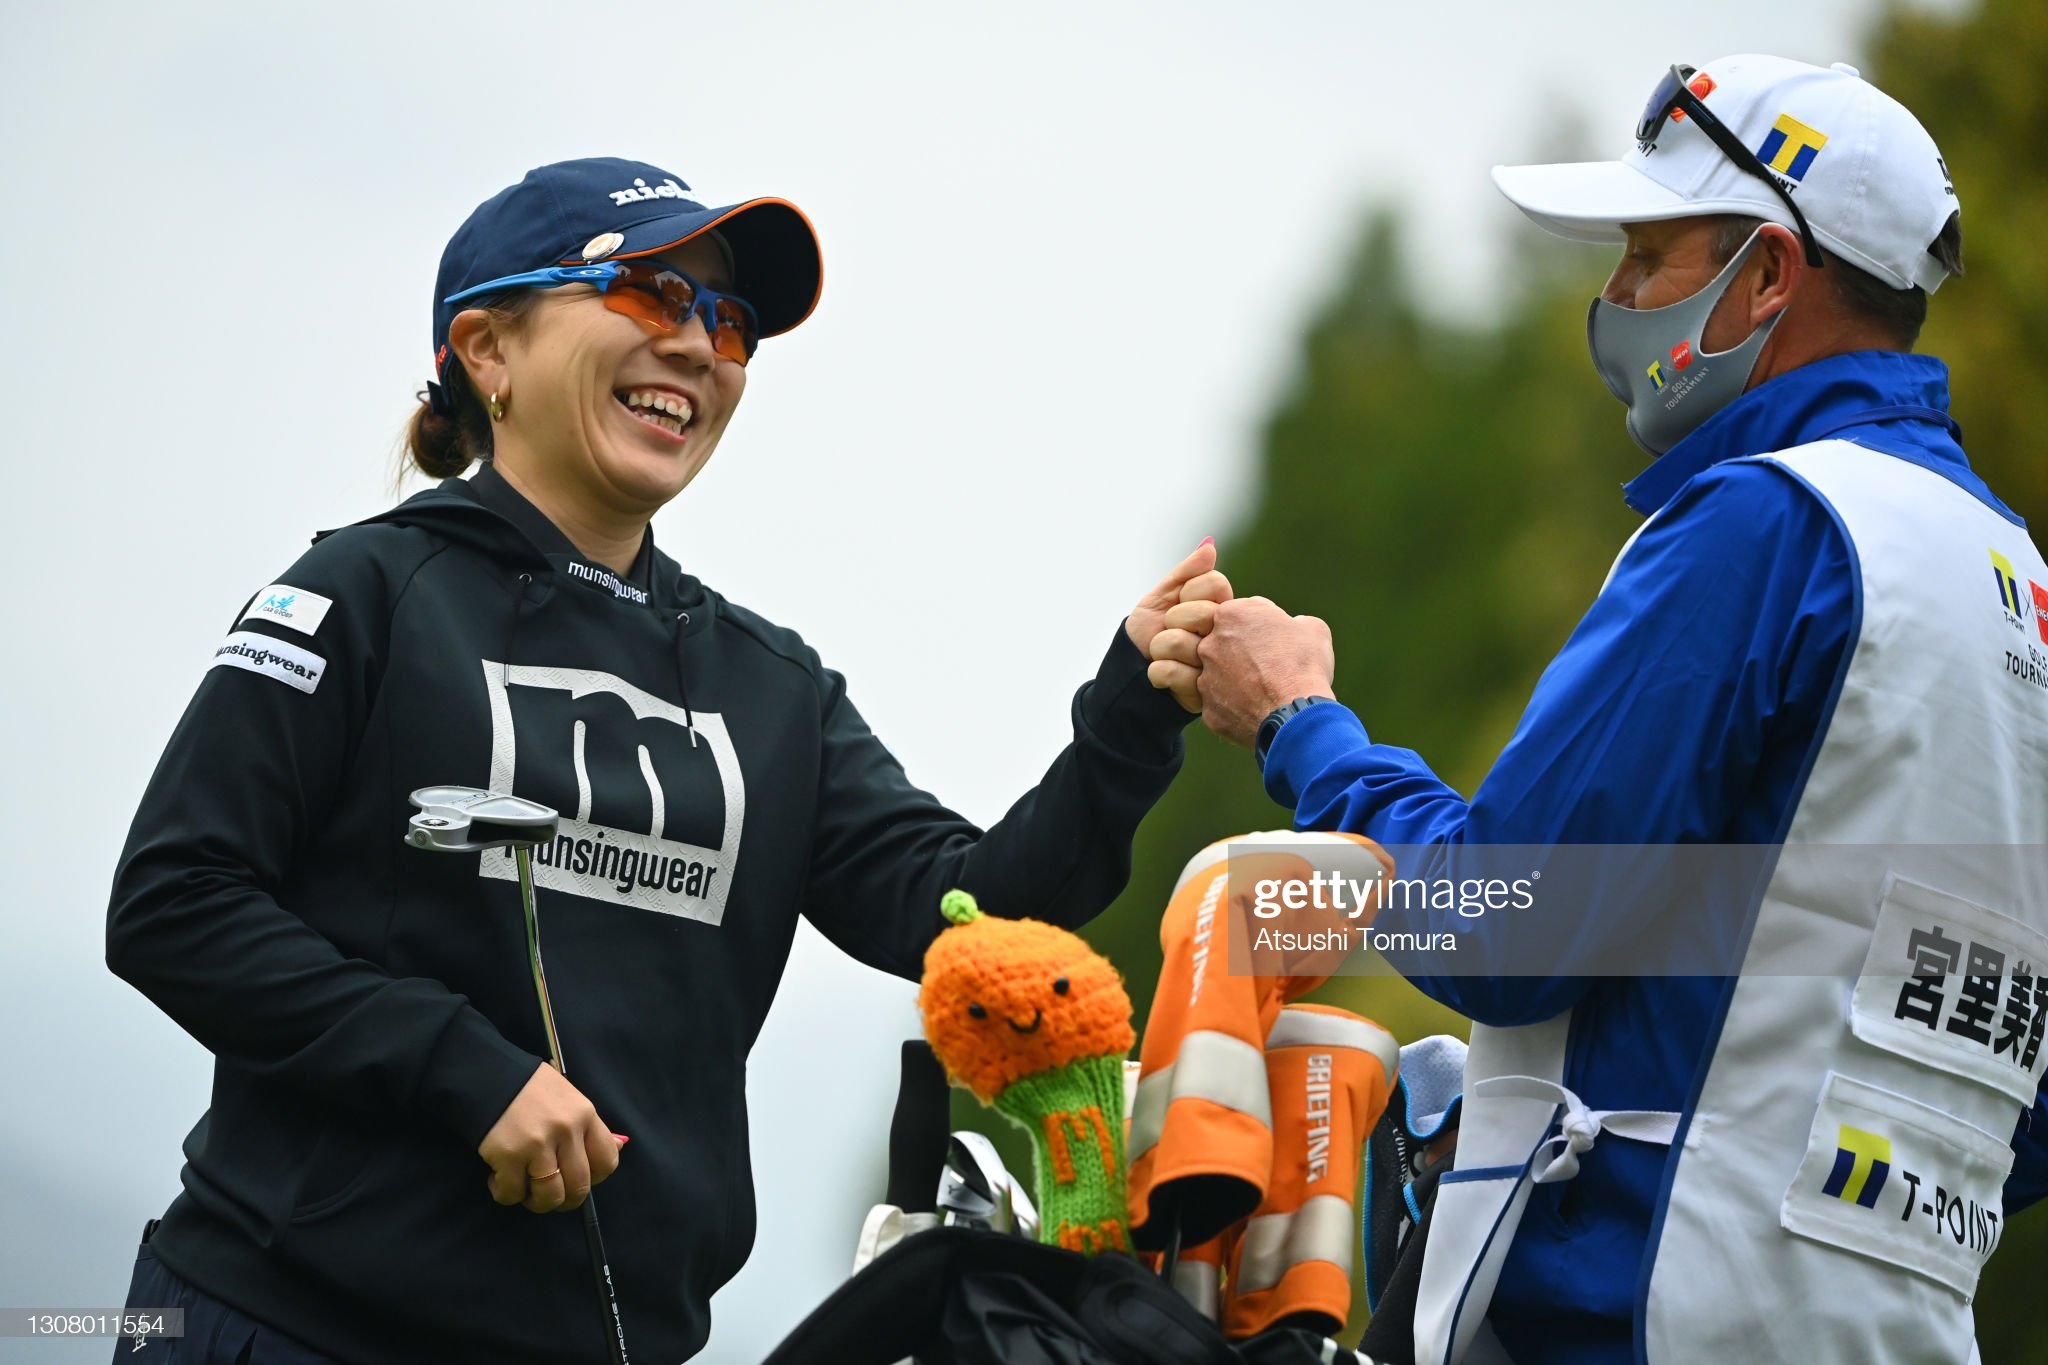 https://media.gettyimages.com/photos/mika-miyazato-of-japan-fist-bumps-with-her-caddie-after-the-birdie-on-picture-id1308011554?s=2048x2048